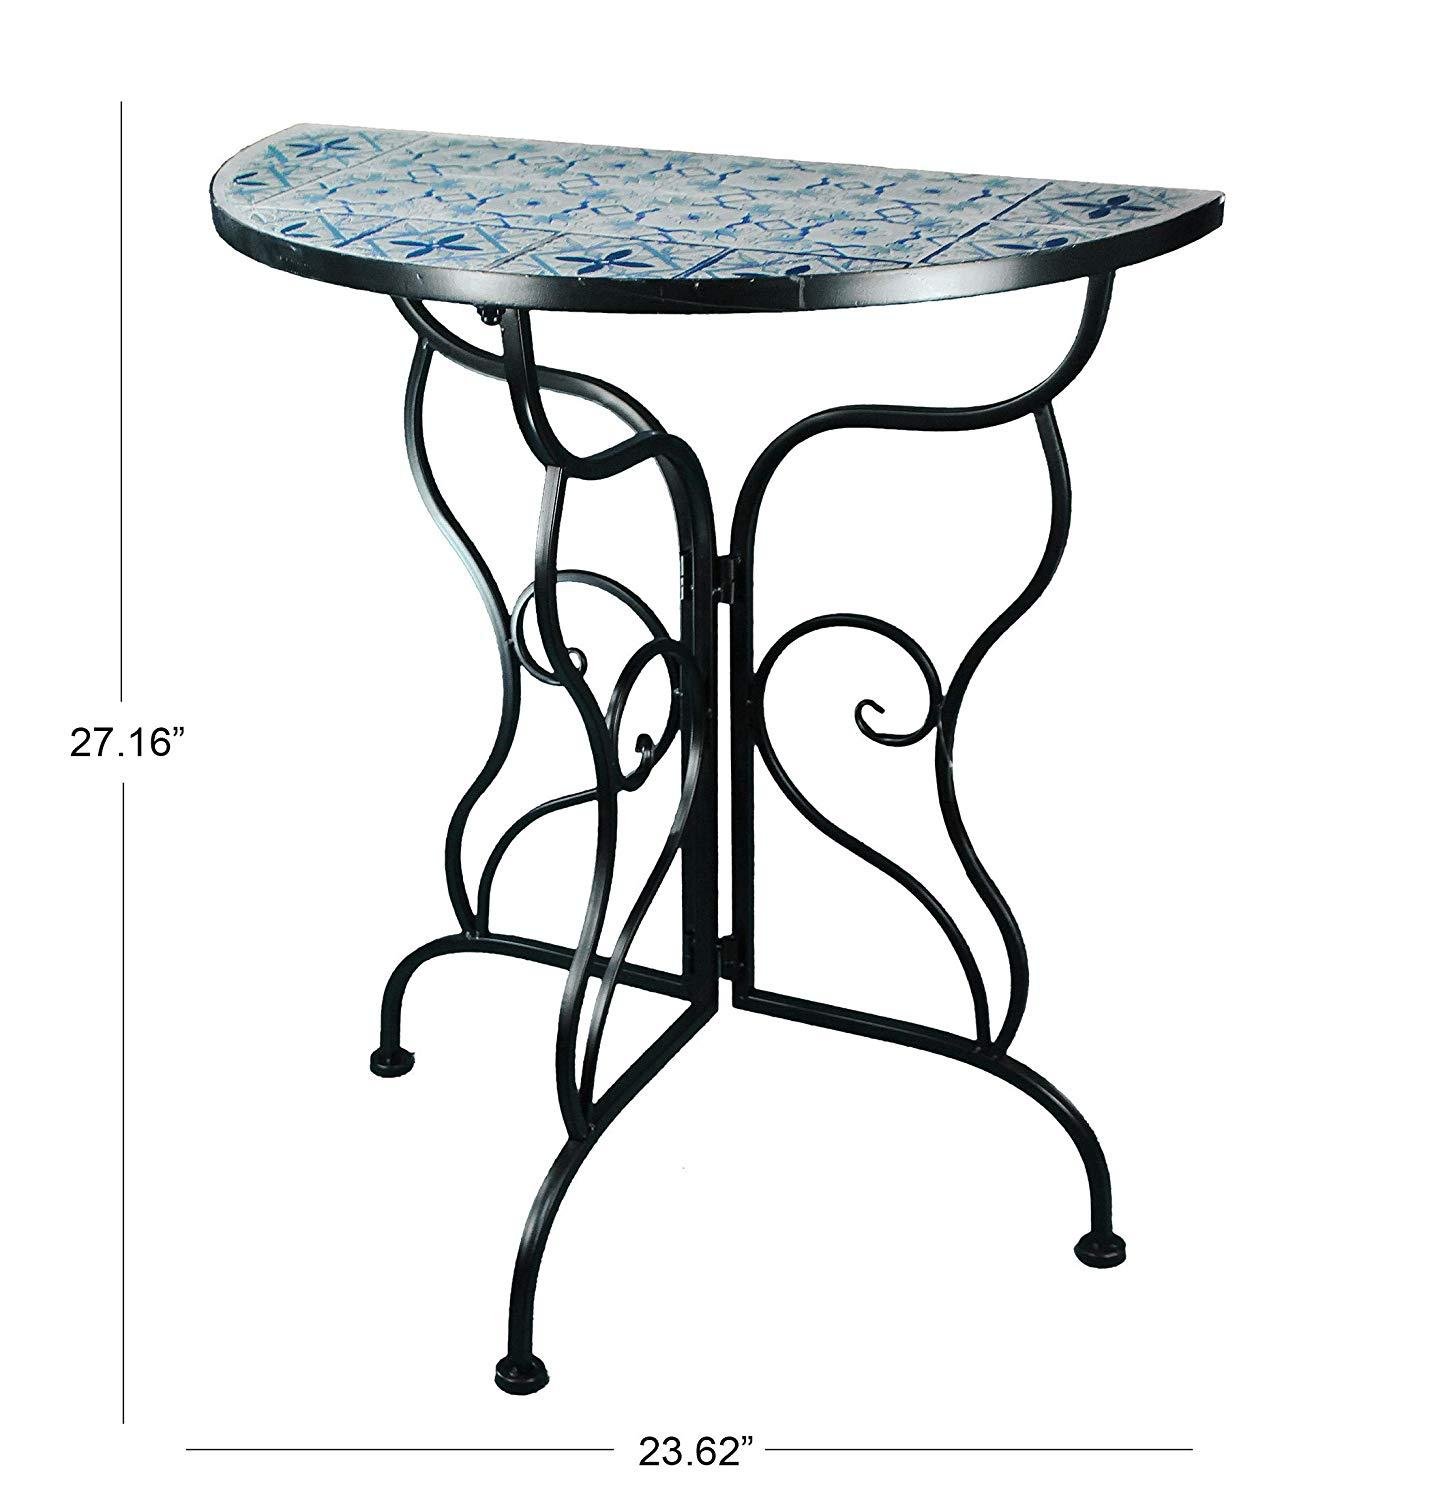 benzara deco console hummingbird round glass metal outdoor end table indoor garden patio accent mosaic side tables lazy boy furniture regina pallet dog tutorial farm design